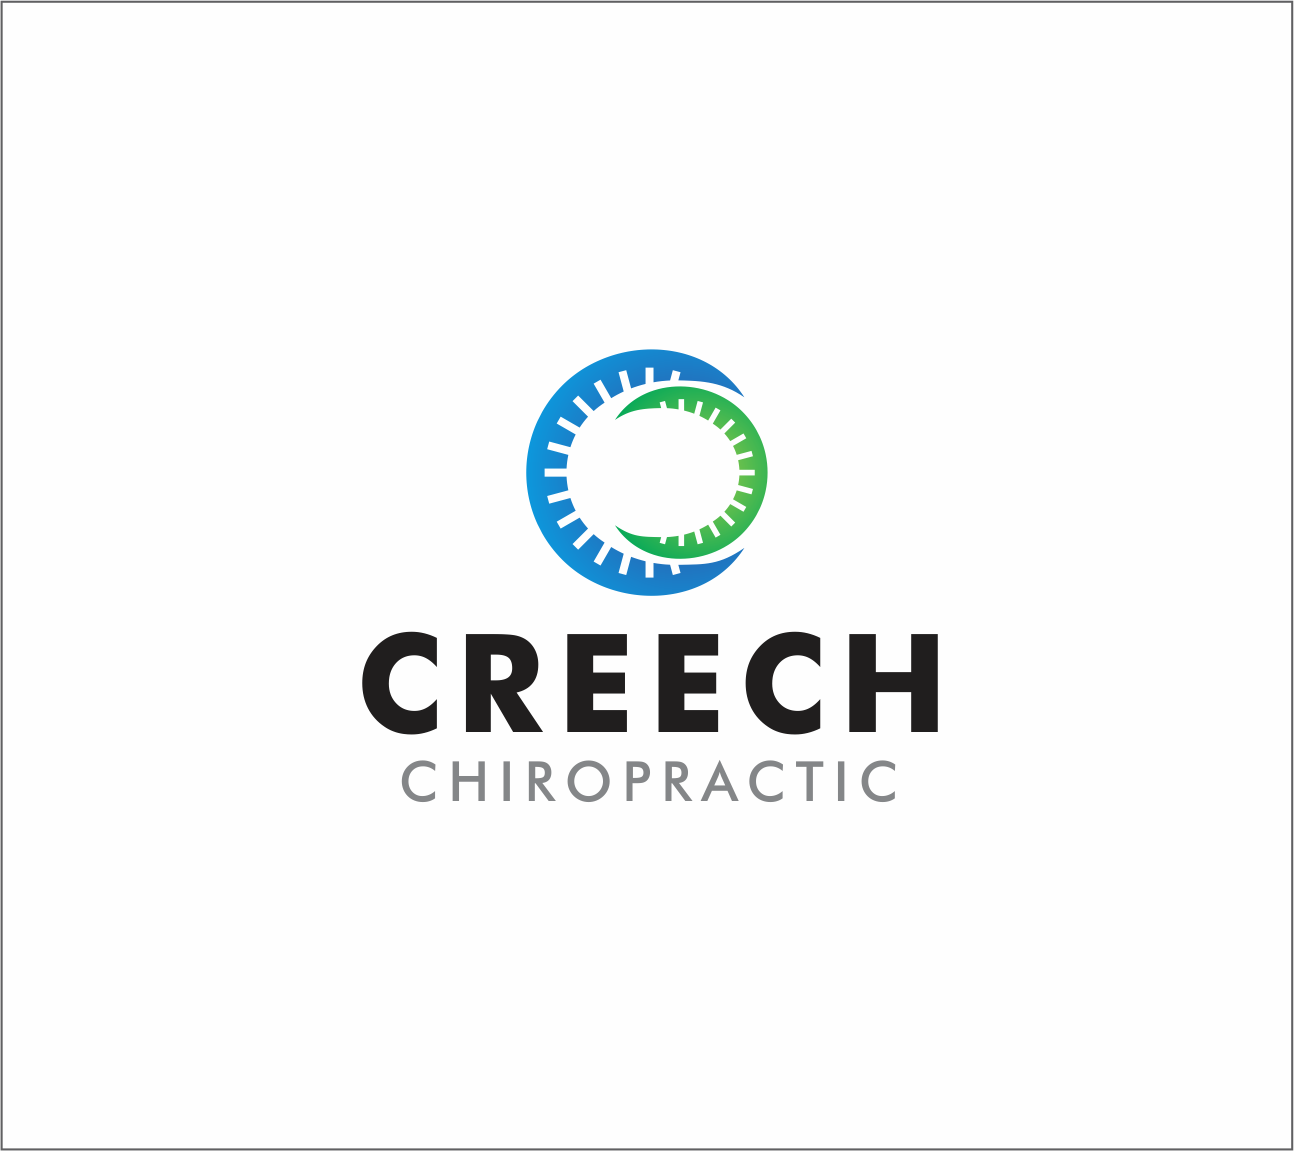 Logo Design by Armada Jamaluddin - Entry No. 55 in the Logo Design Contest Imaginative Logo Design for Creech Chiropractic.